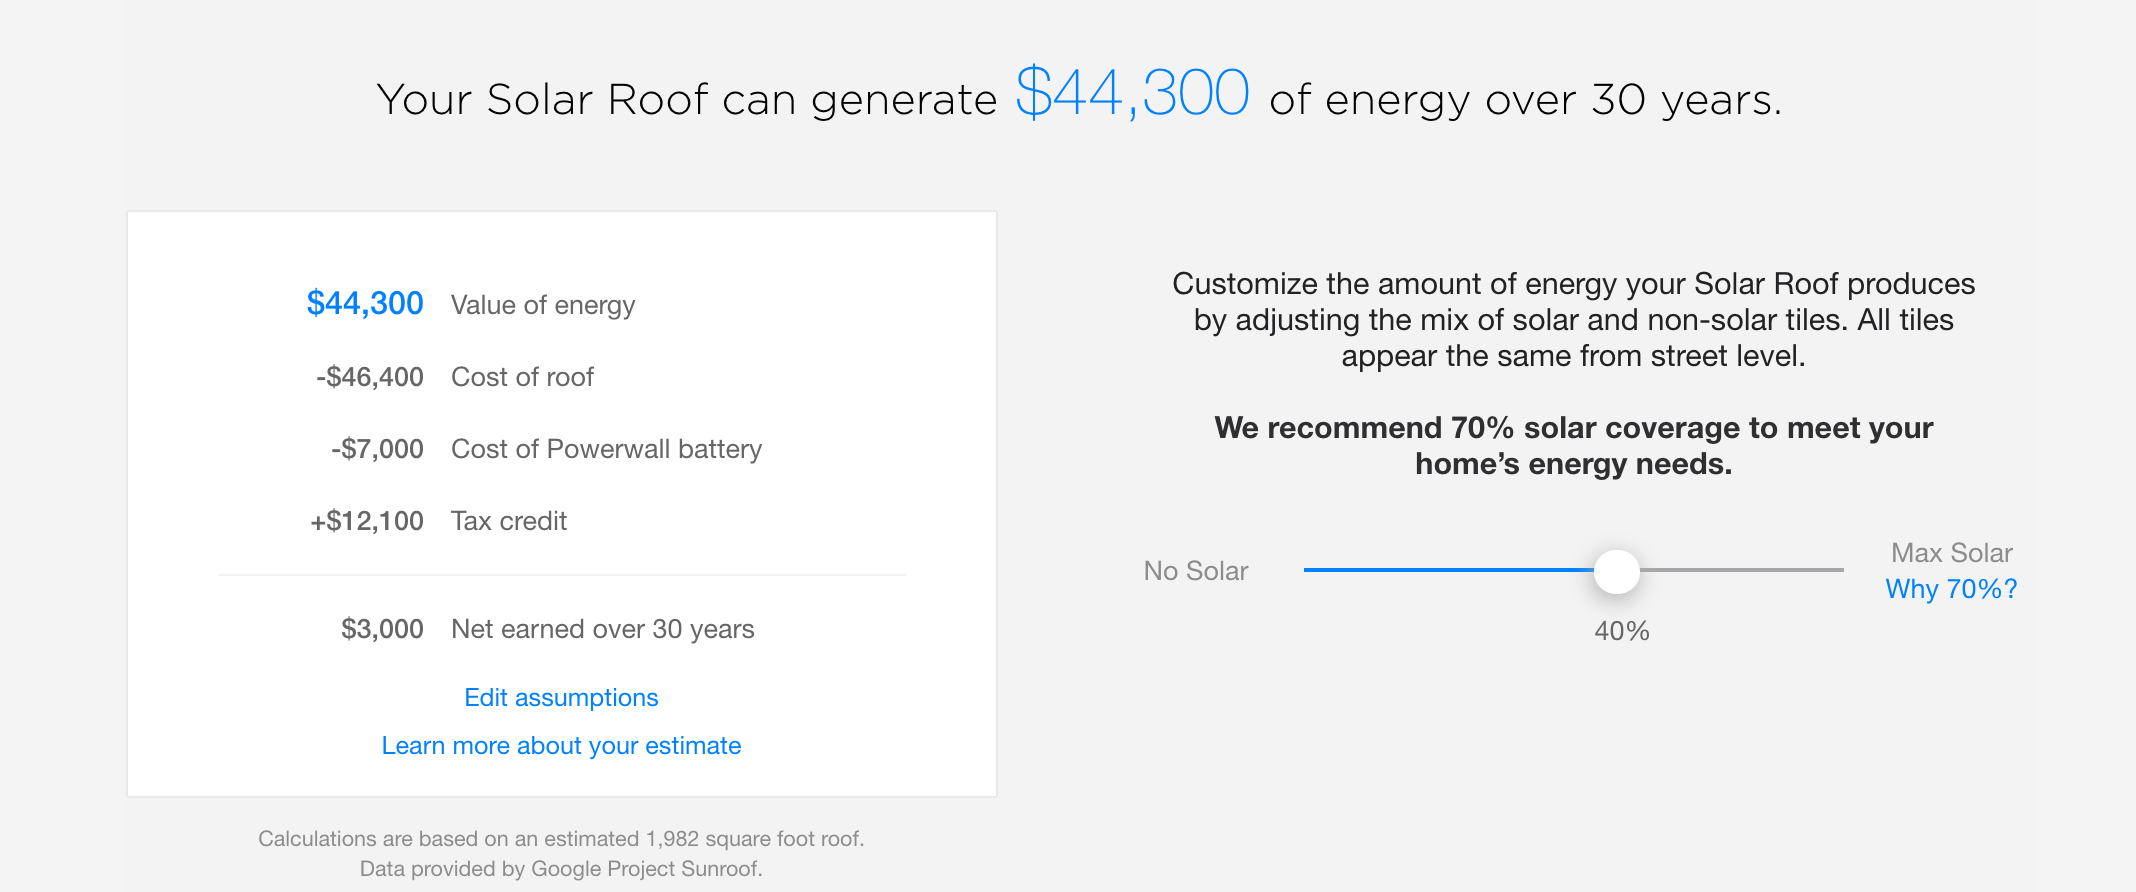 Solar Roof Cost >> Tesla Releases Details Of Its Solar Roof Tiles Cheaper Than Regular